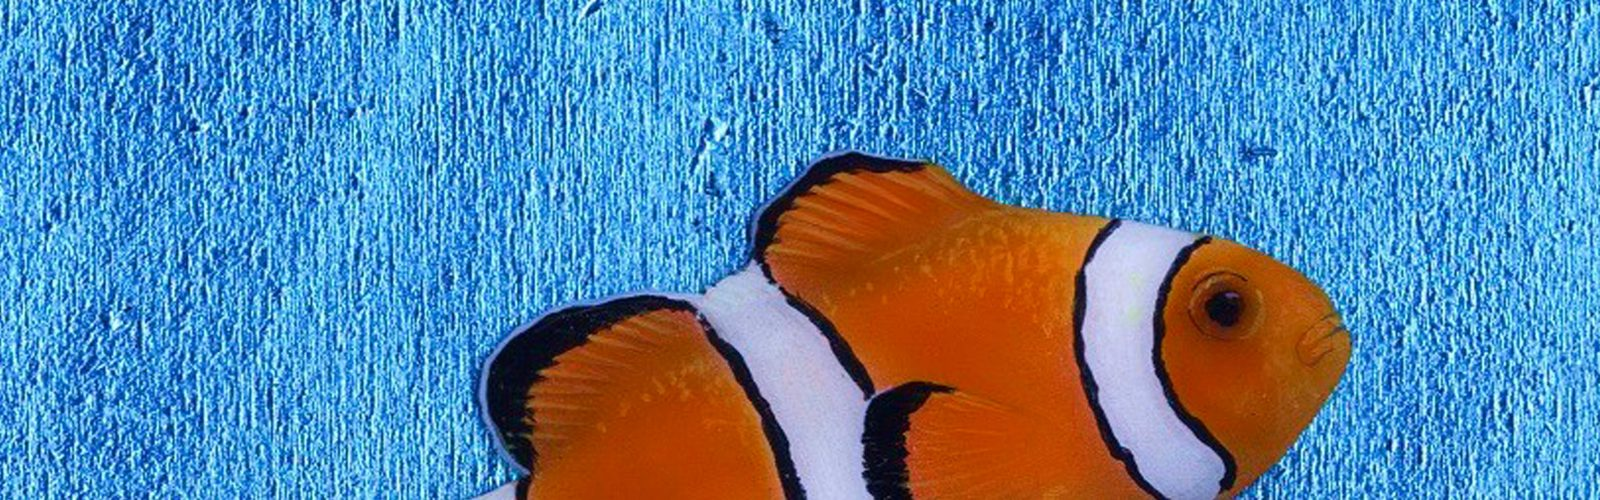 nick oneill painting of a clown fish